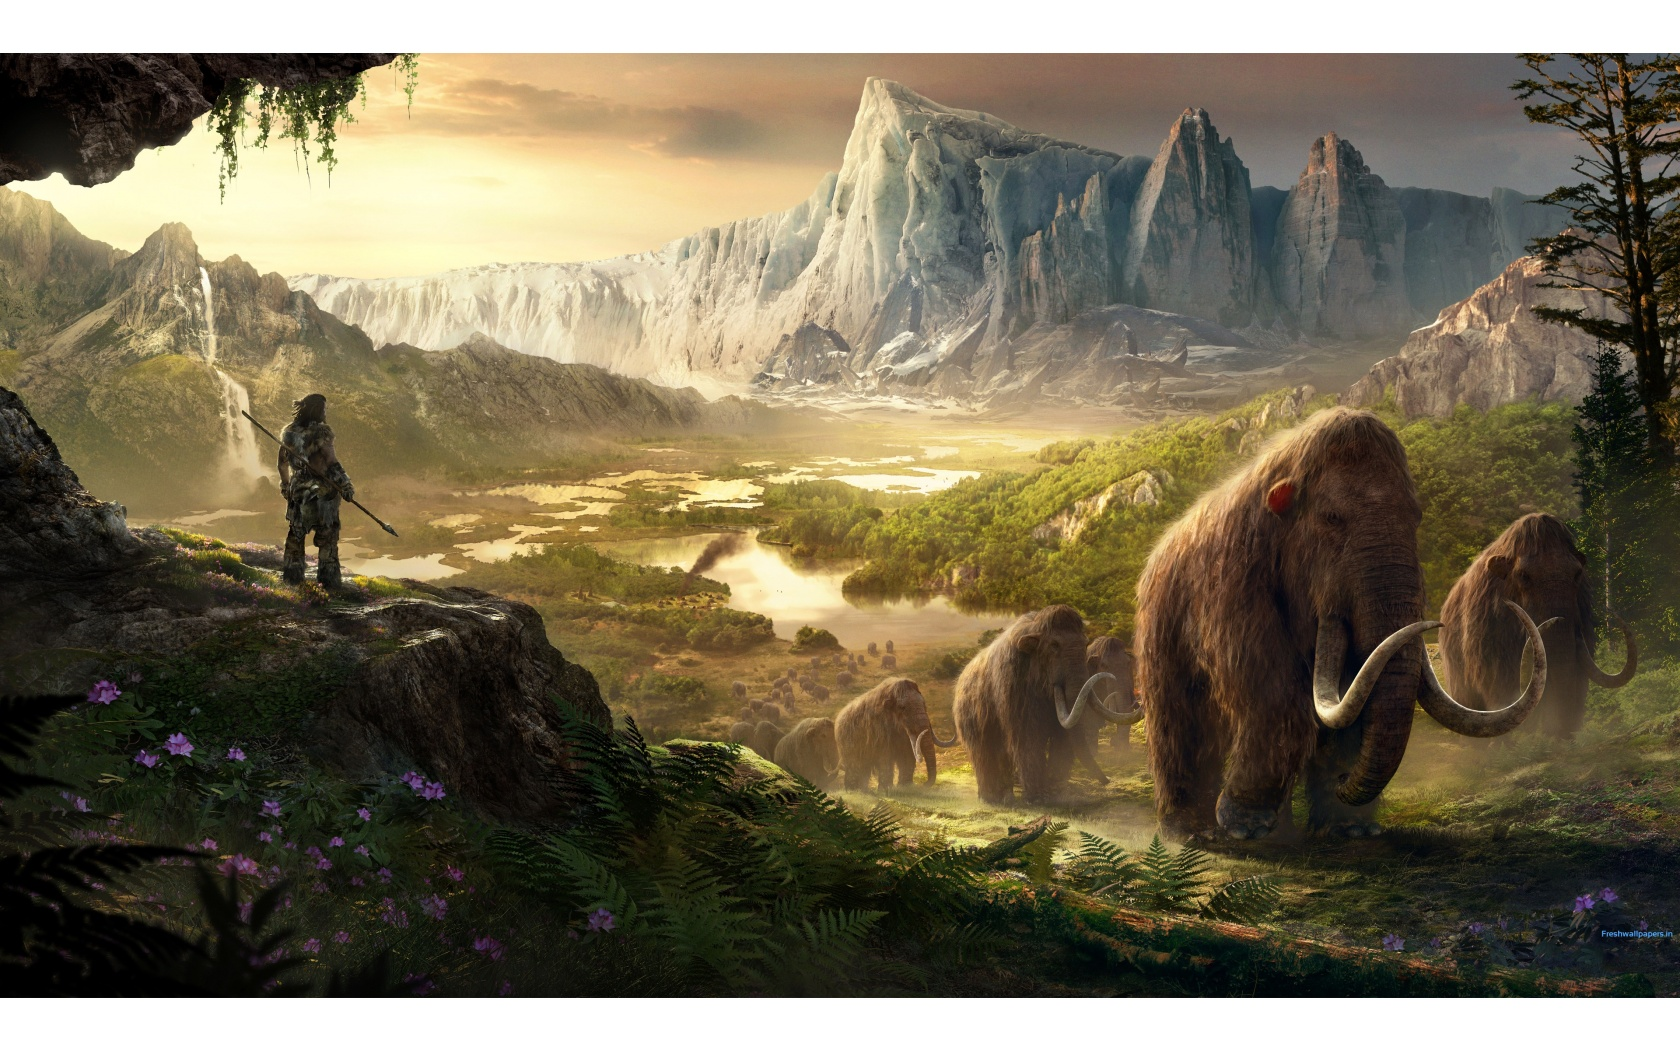 Far Cry Primal Wallpapers 24 Wallpapers Adorable Wallpapers